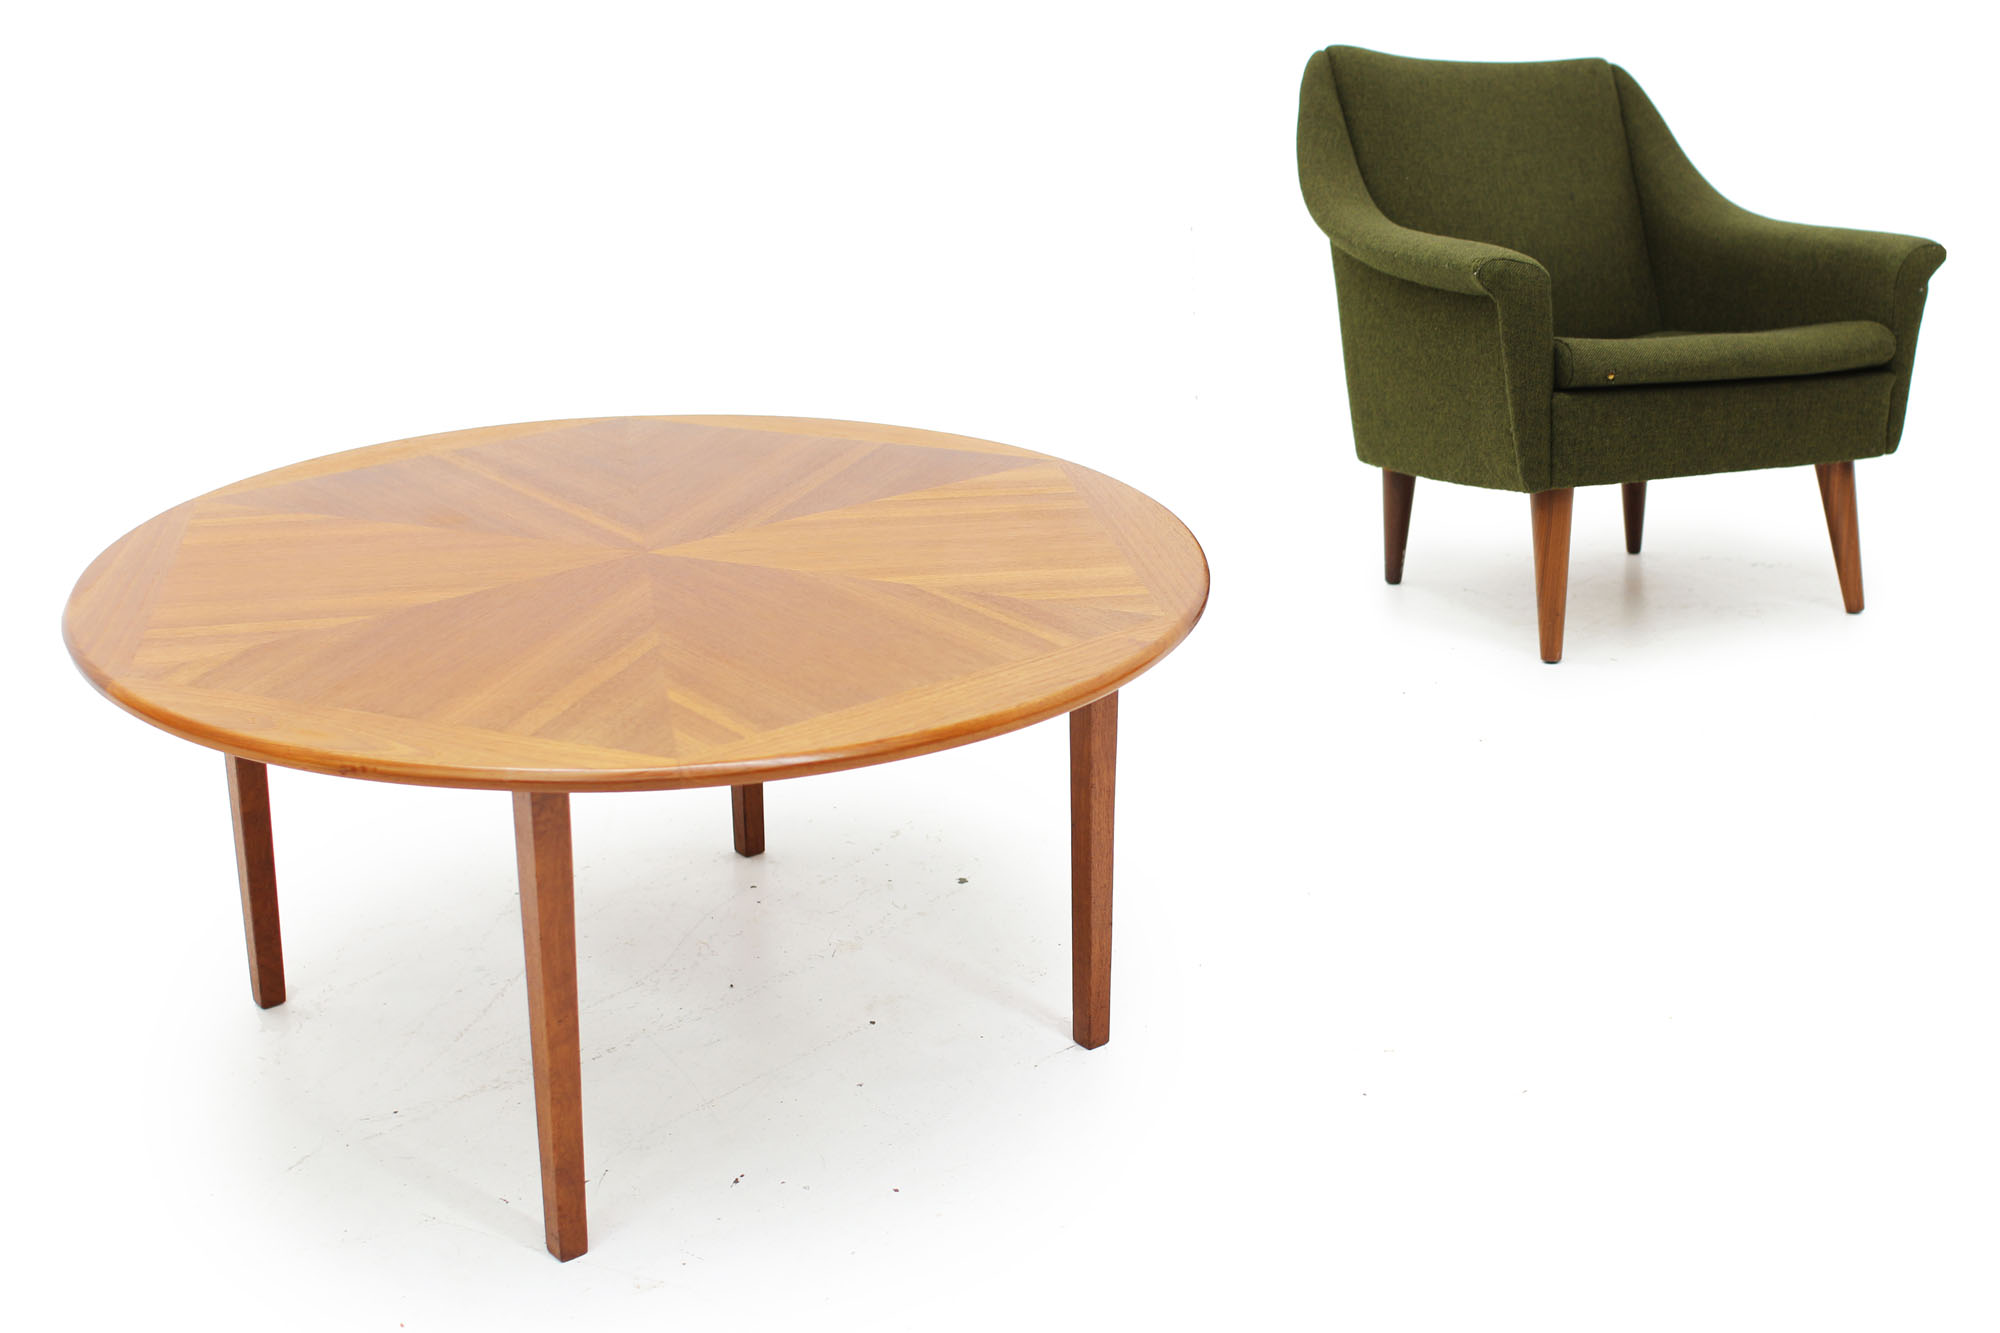 Mid Mod Green Lounge Chair and Round Starburst Coffee table (7).jpg